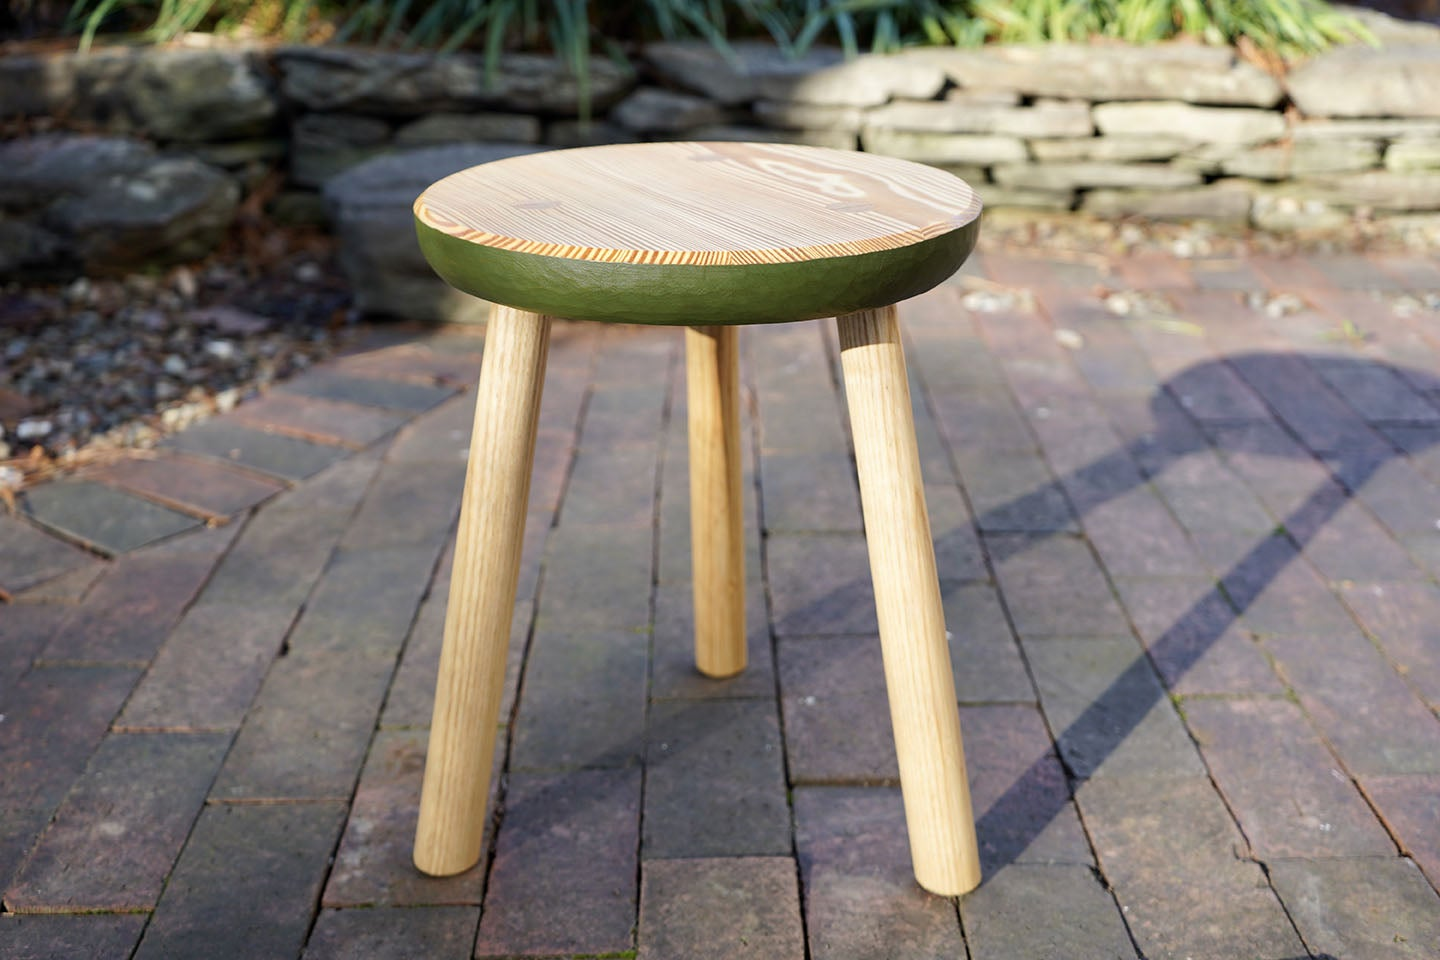 a wooden three-legged stool on a brick patio